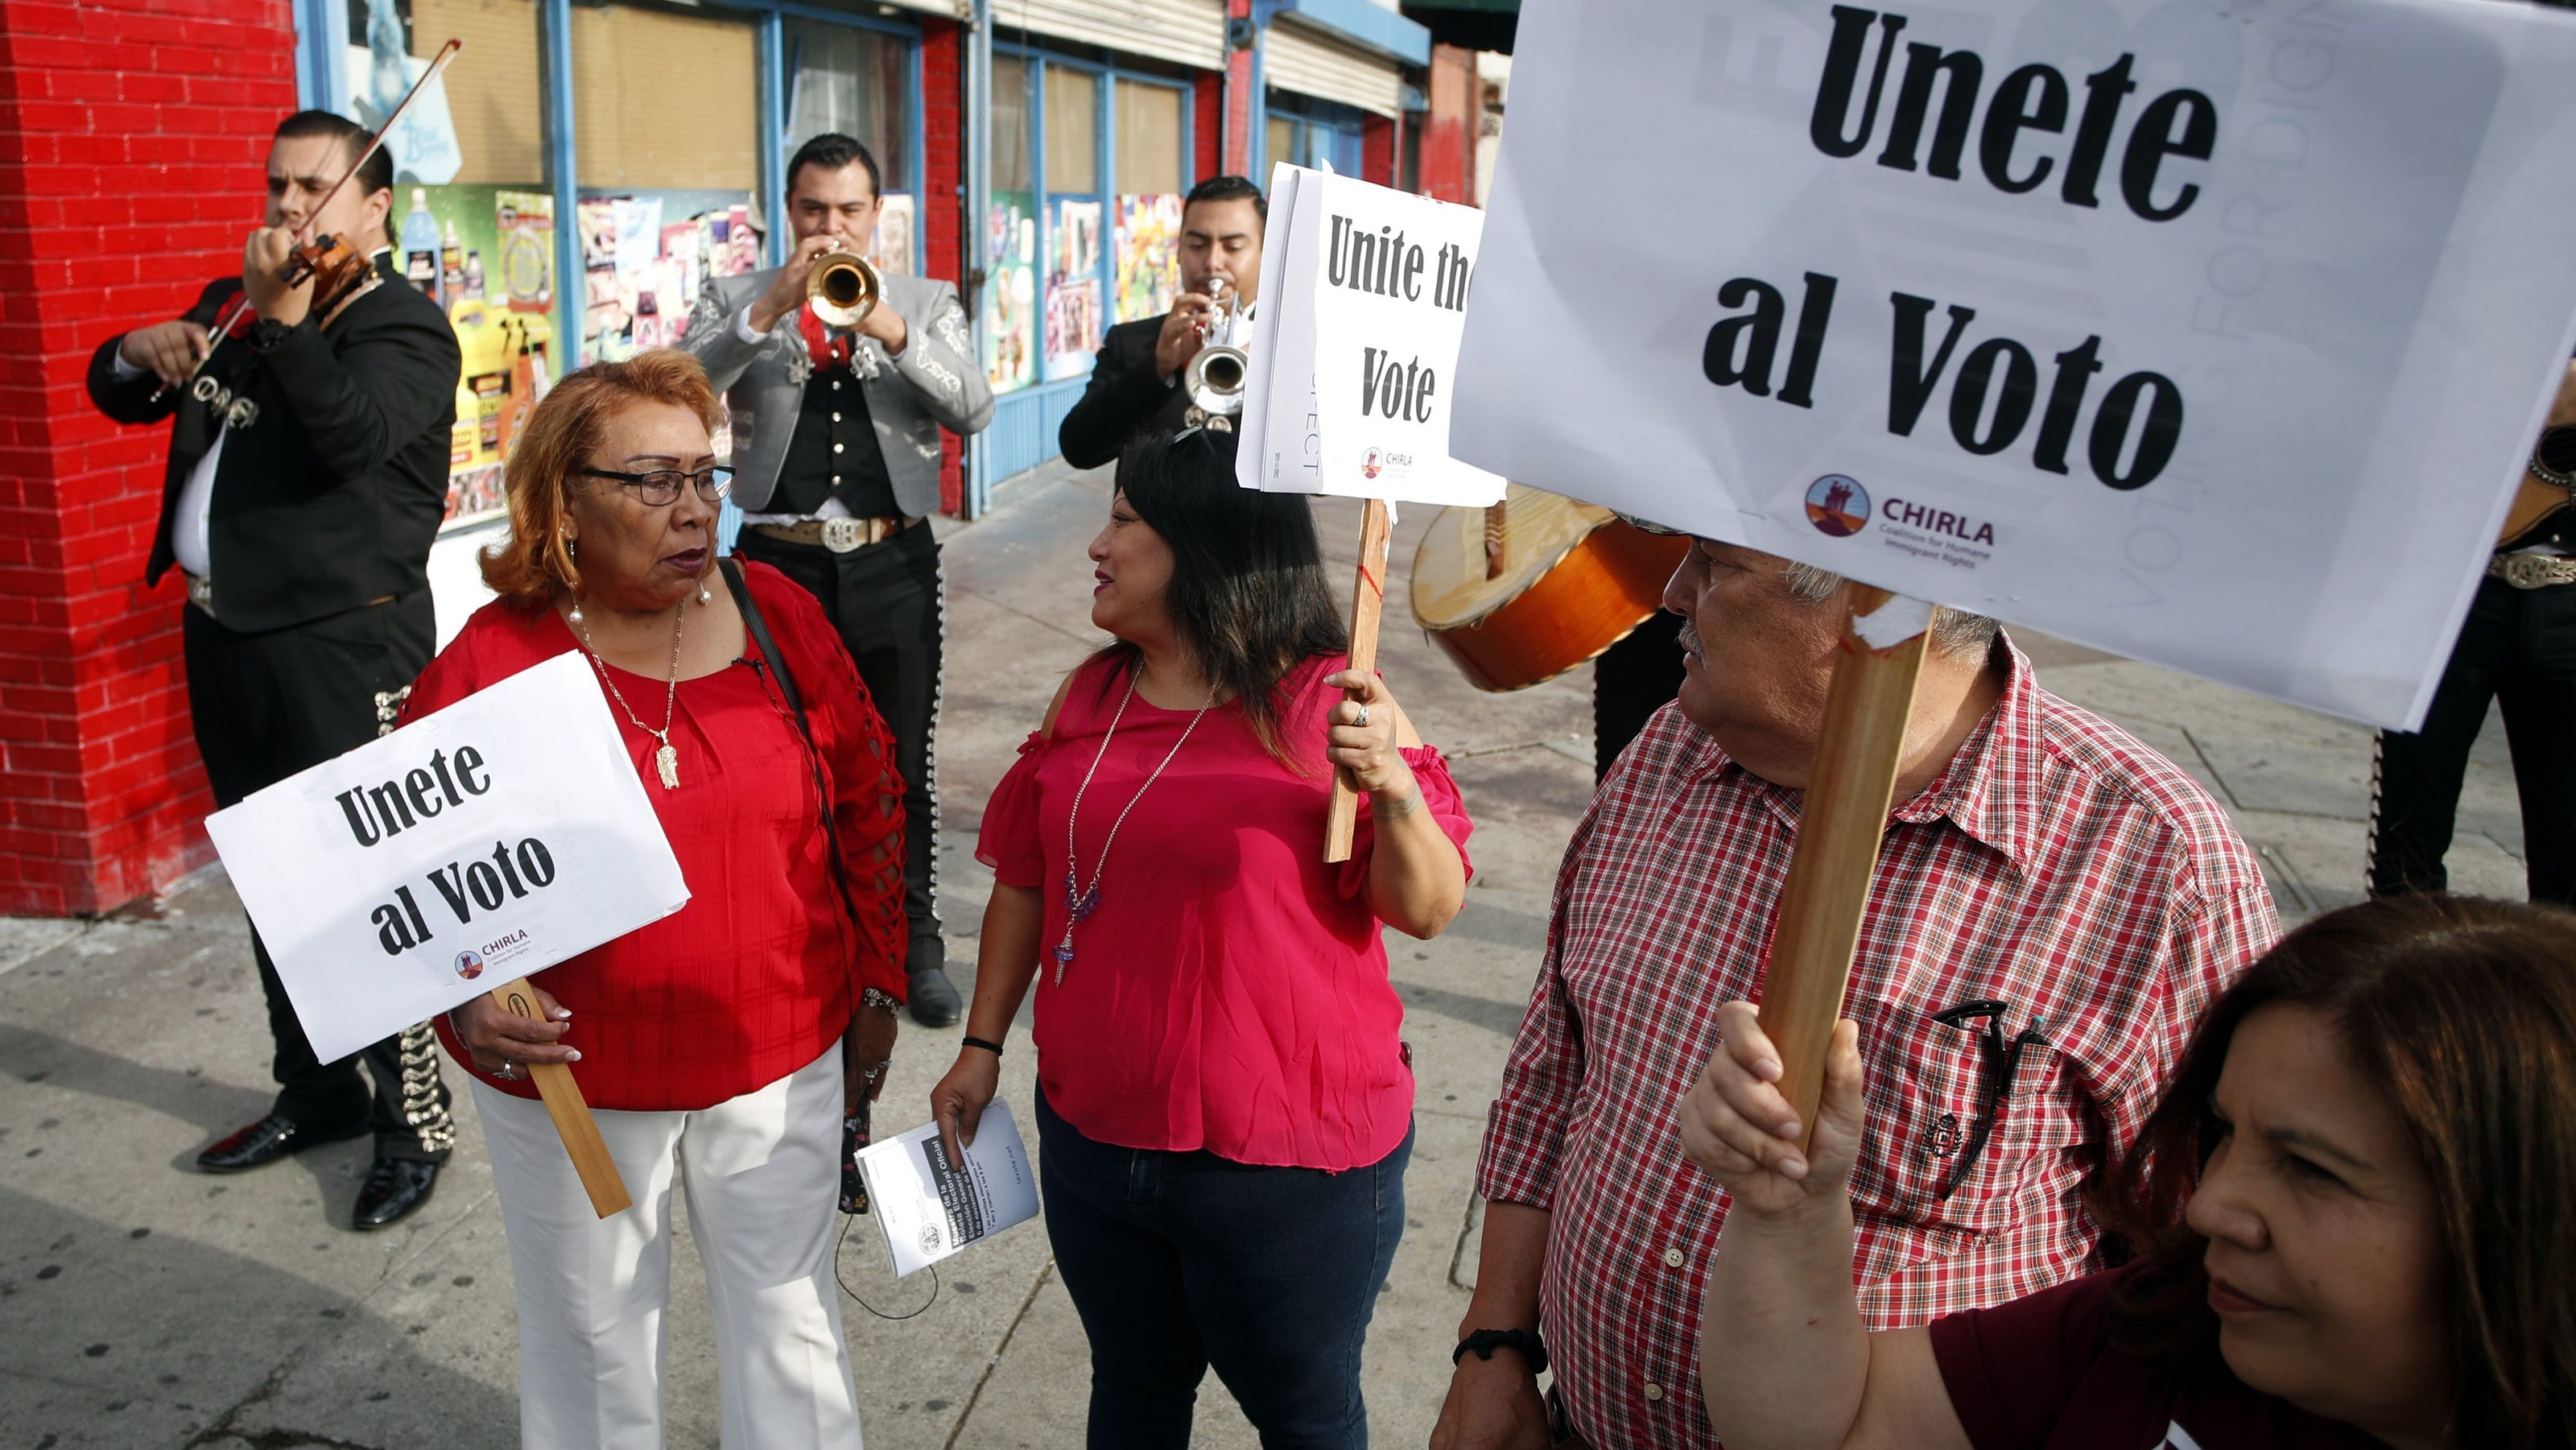 www.usatoday.com: Why California Latinos hold the key to the 2022 midterm elections